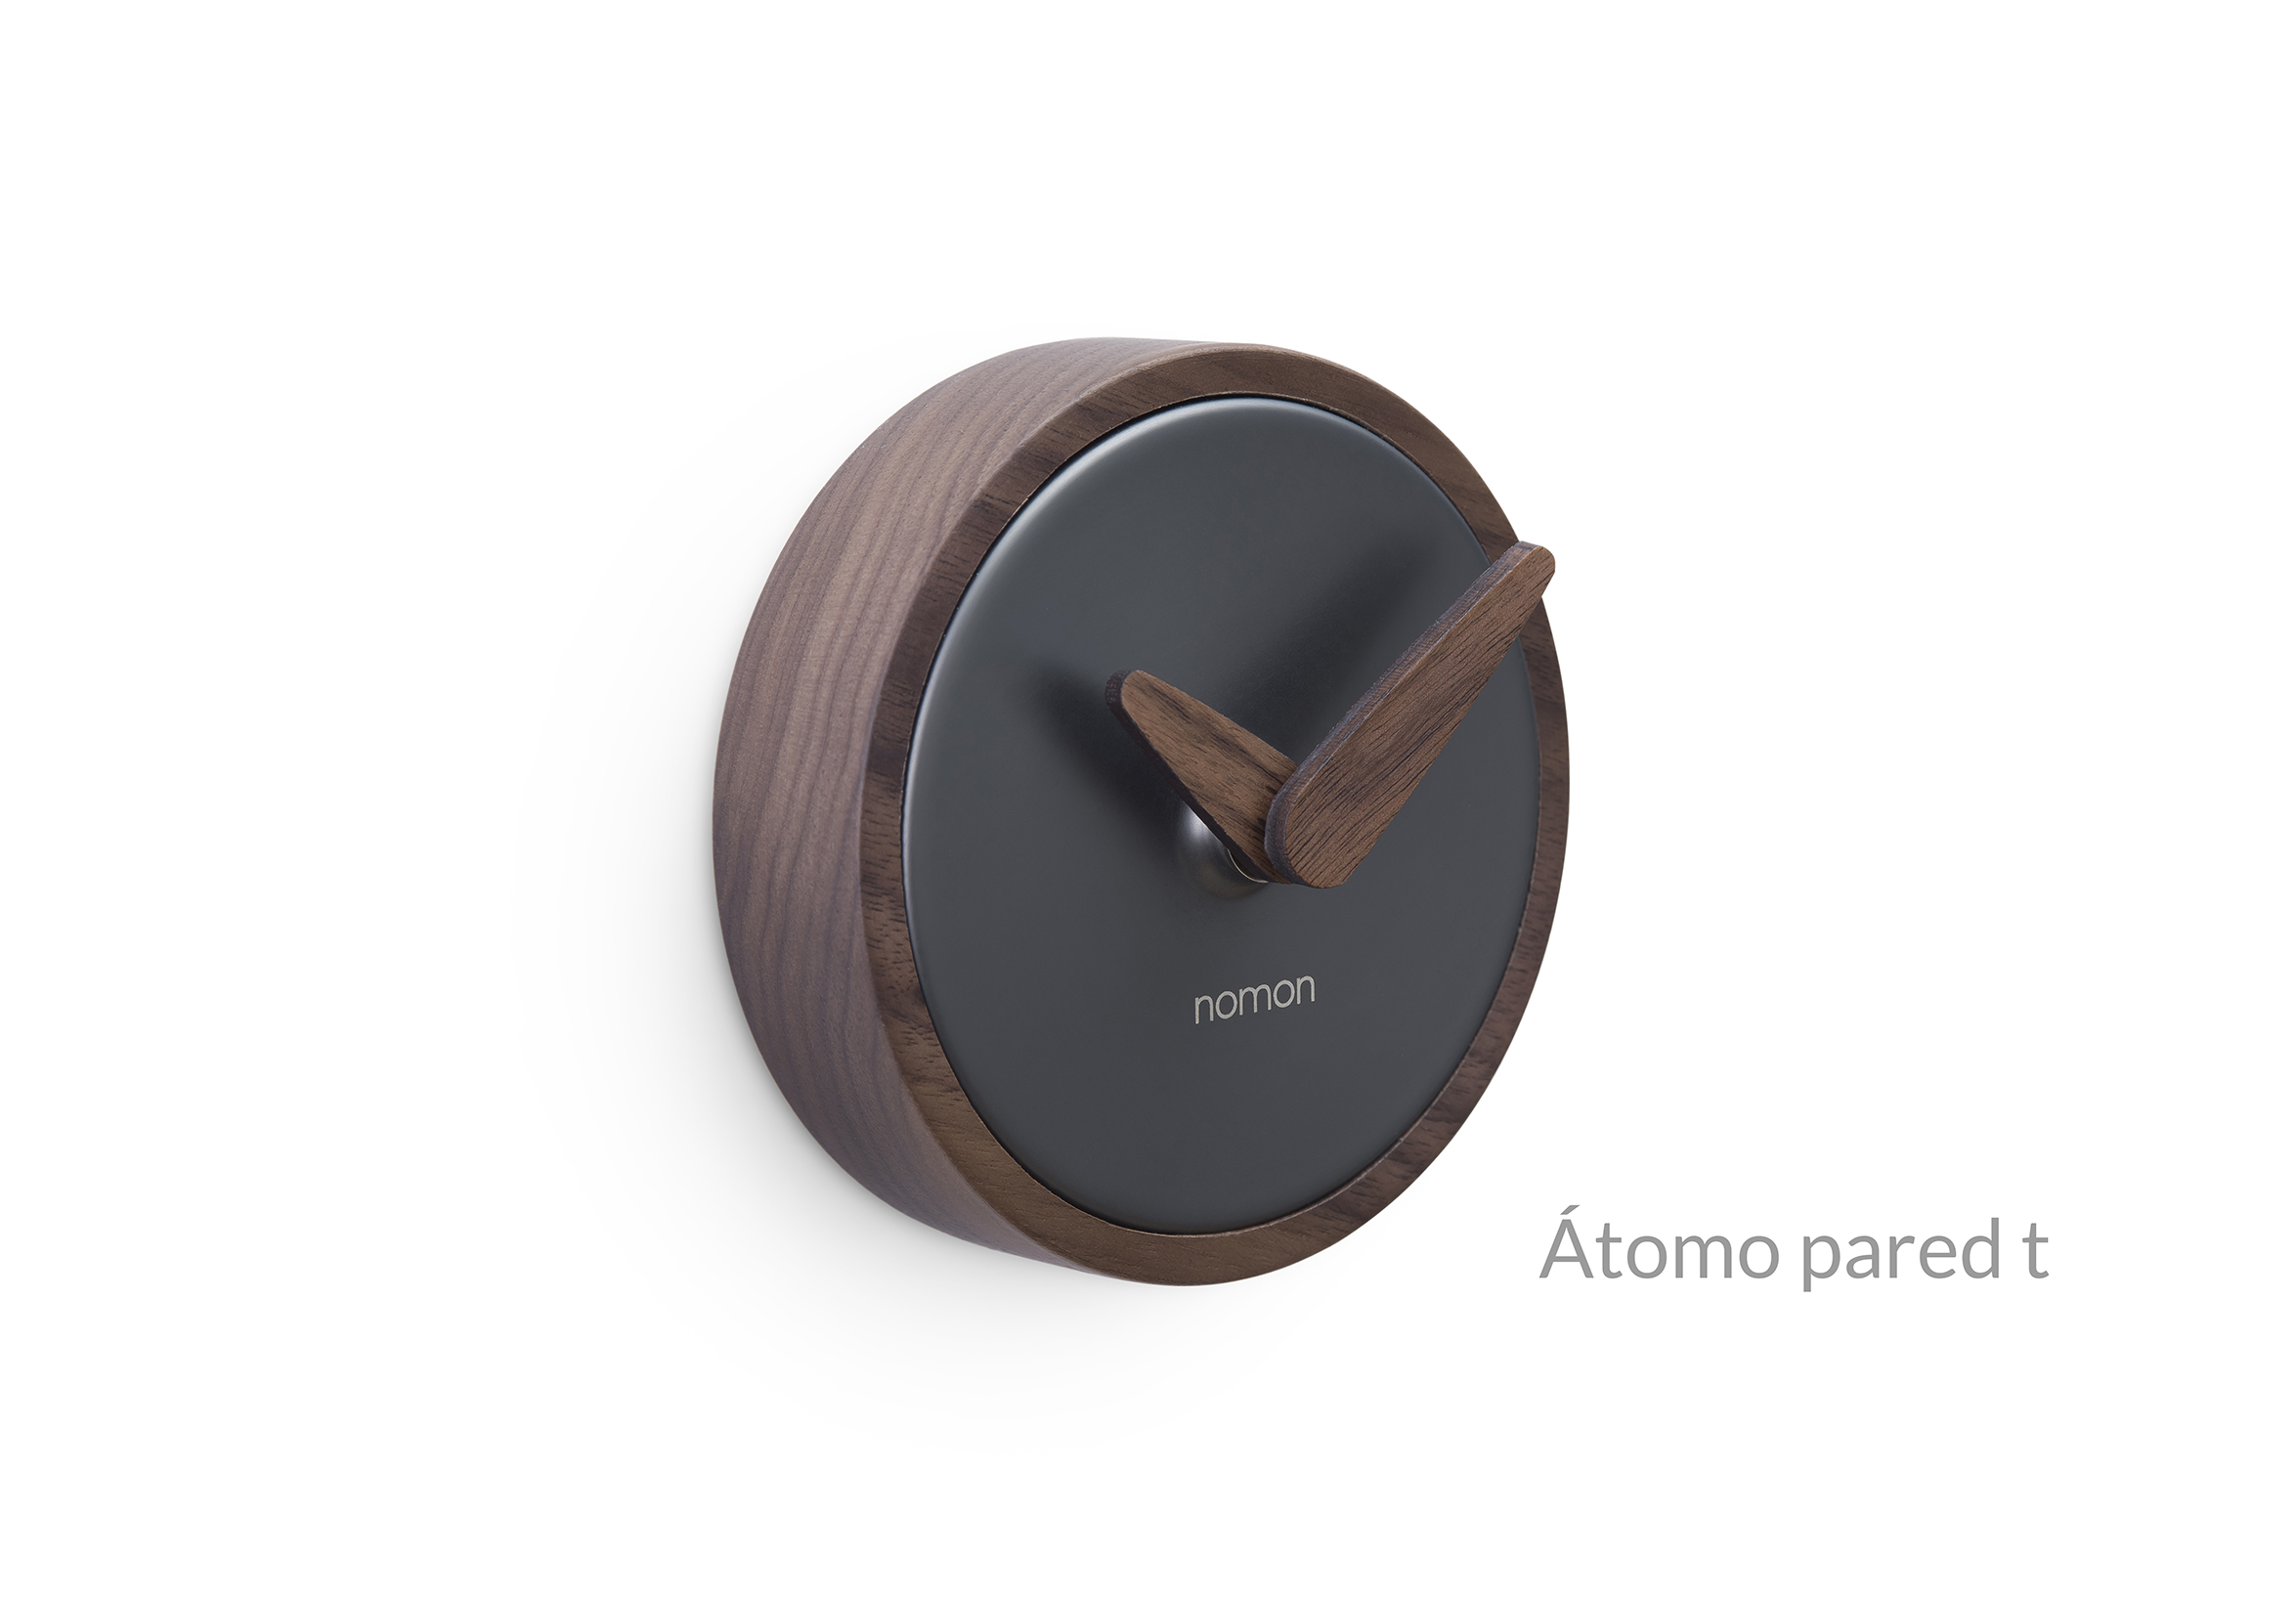 Atomo Wall Clock Nomon Graphite Finish